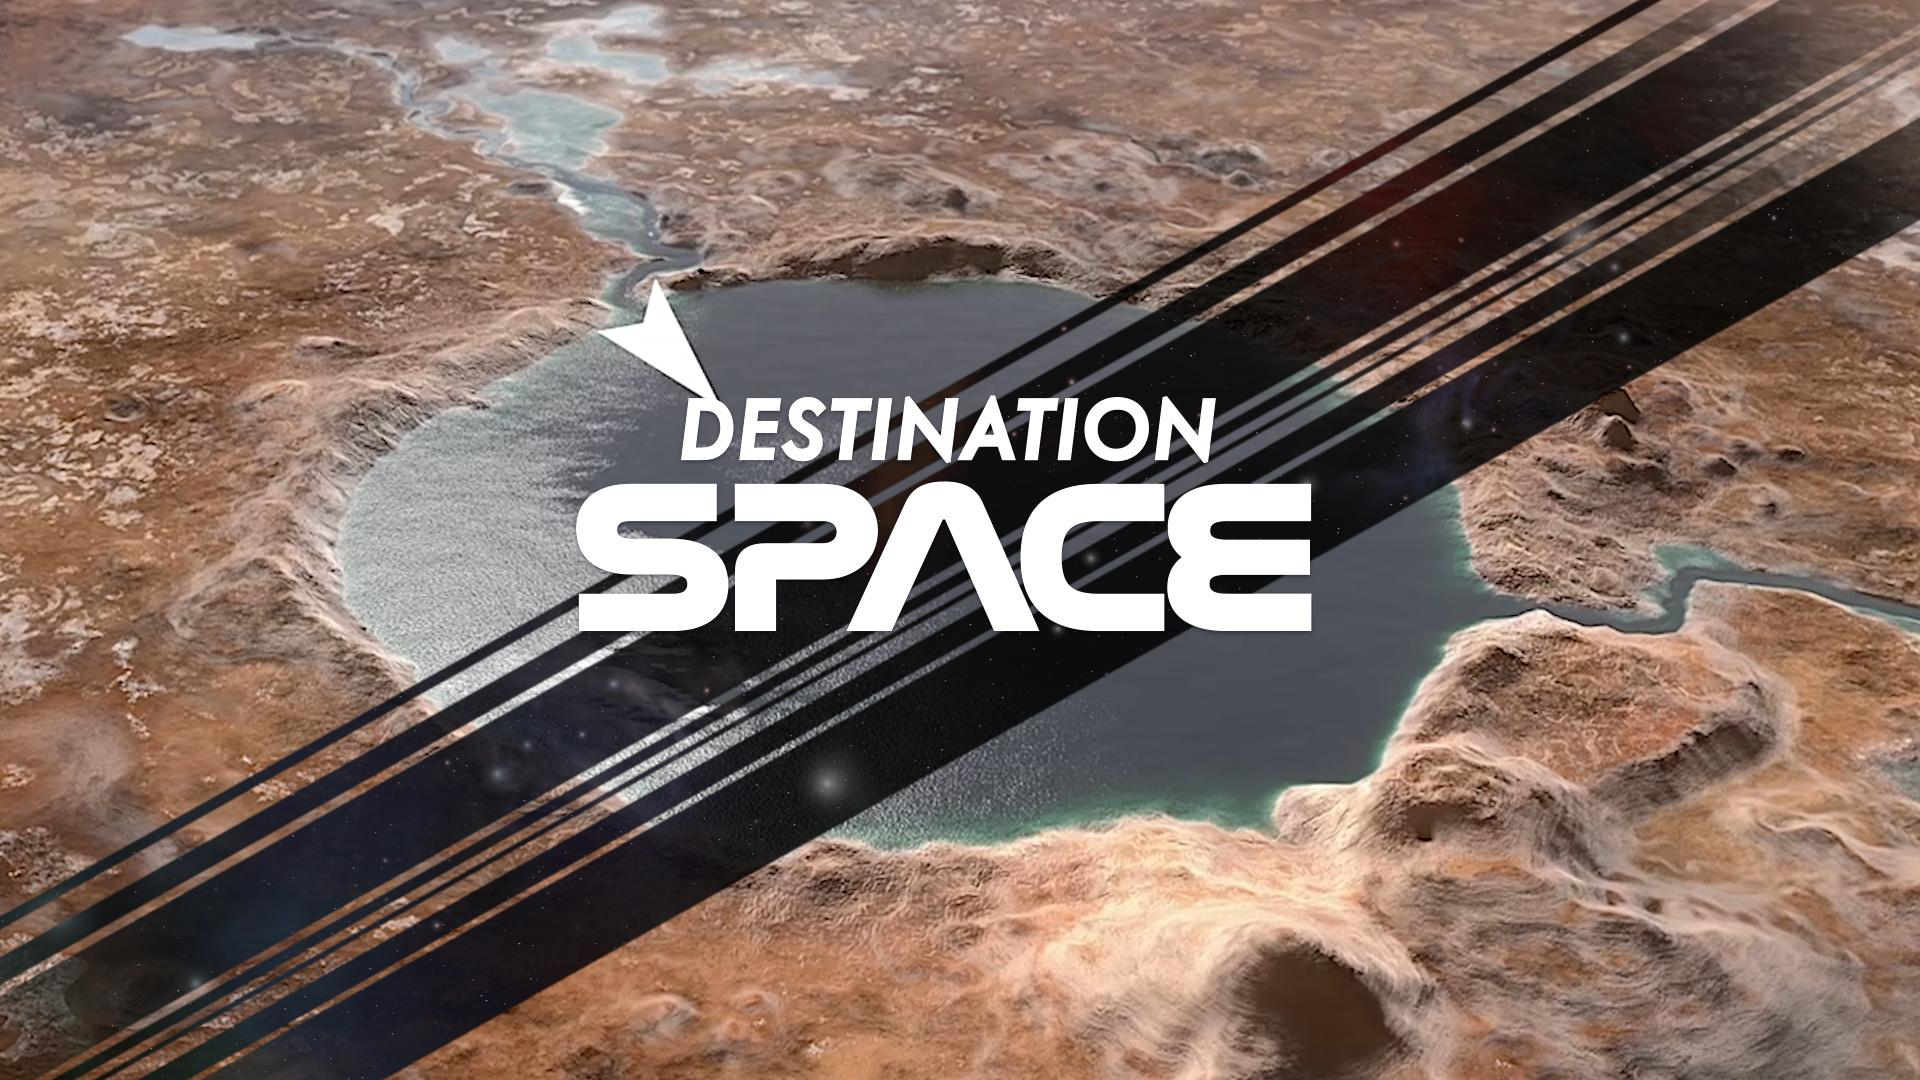 Destination Space: Mars 2020 Perseverance